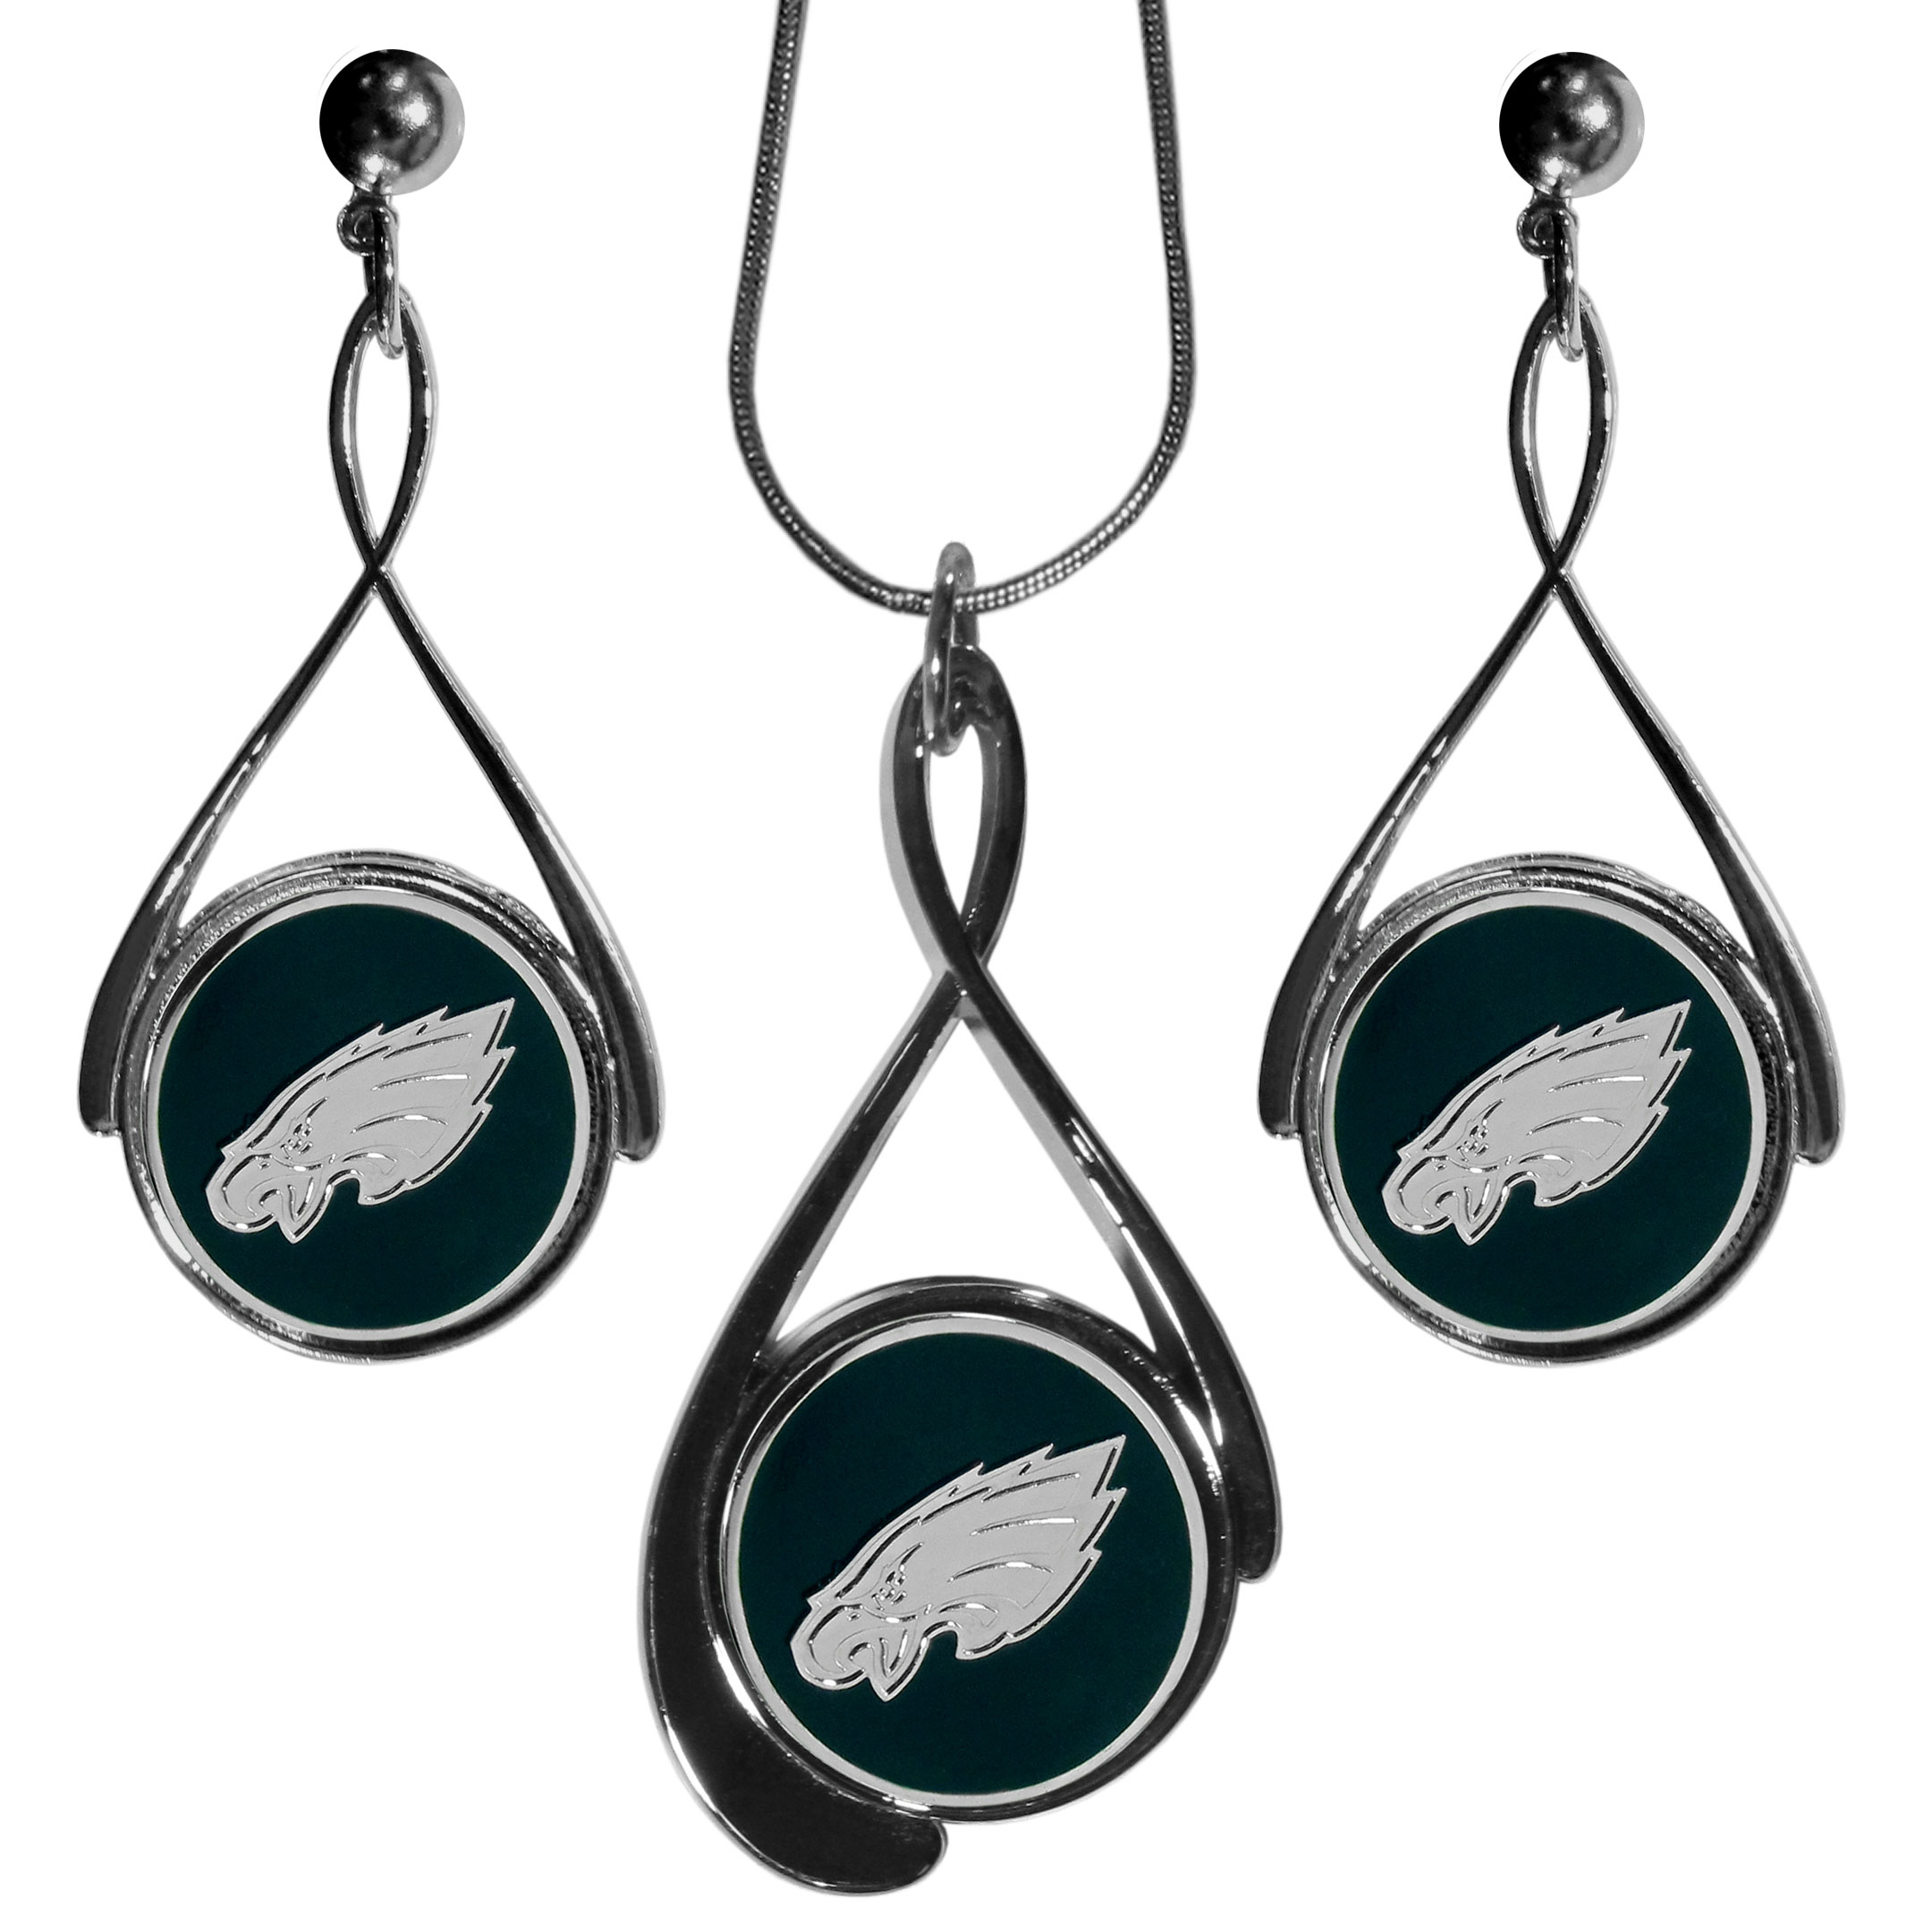 Philadelphia Eagles Tear Drop Jewelry Set - Our Philadelphia Eagles tear drop earrings and necklace set is a sporty twist on the classic tear drop style. The high polish dangle earrings feature the team logo in raised metal against the primary team color inset into the 2 inch tear drop setting paired with a beautiful matching necklace with a 18 inch snake chain with 2 inch extendor. The earrings have hypoallergenic stud posts.